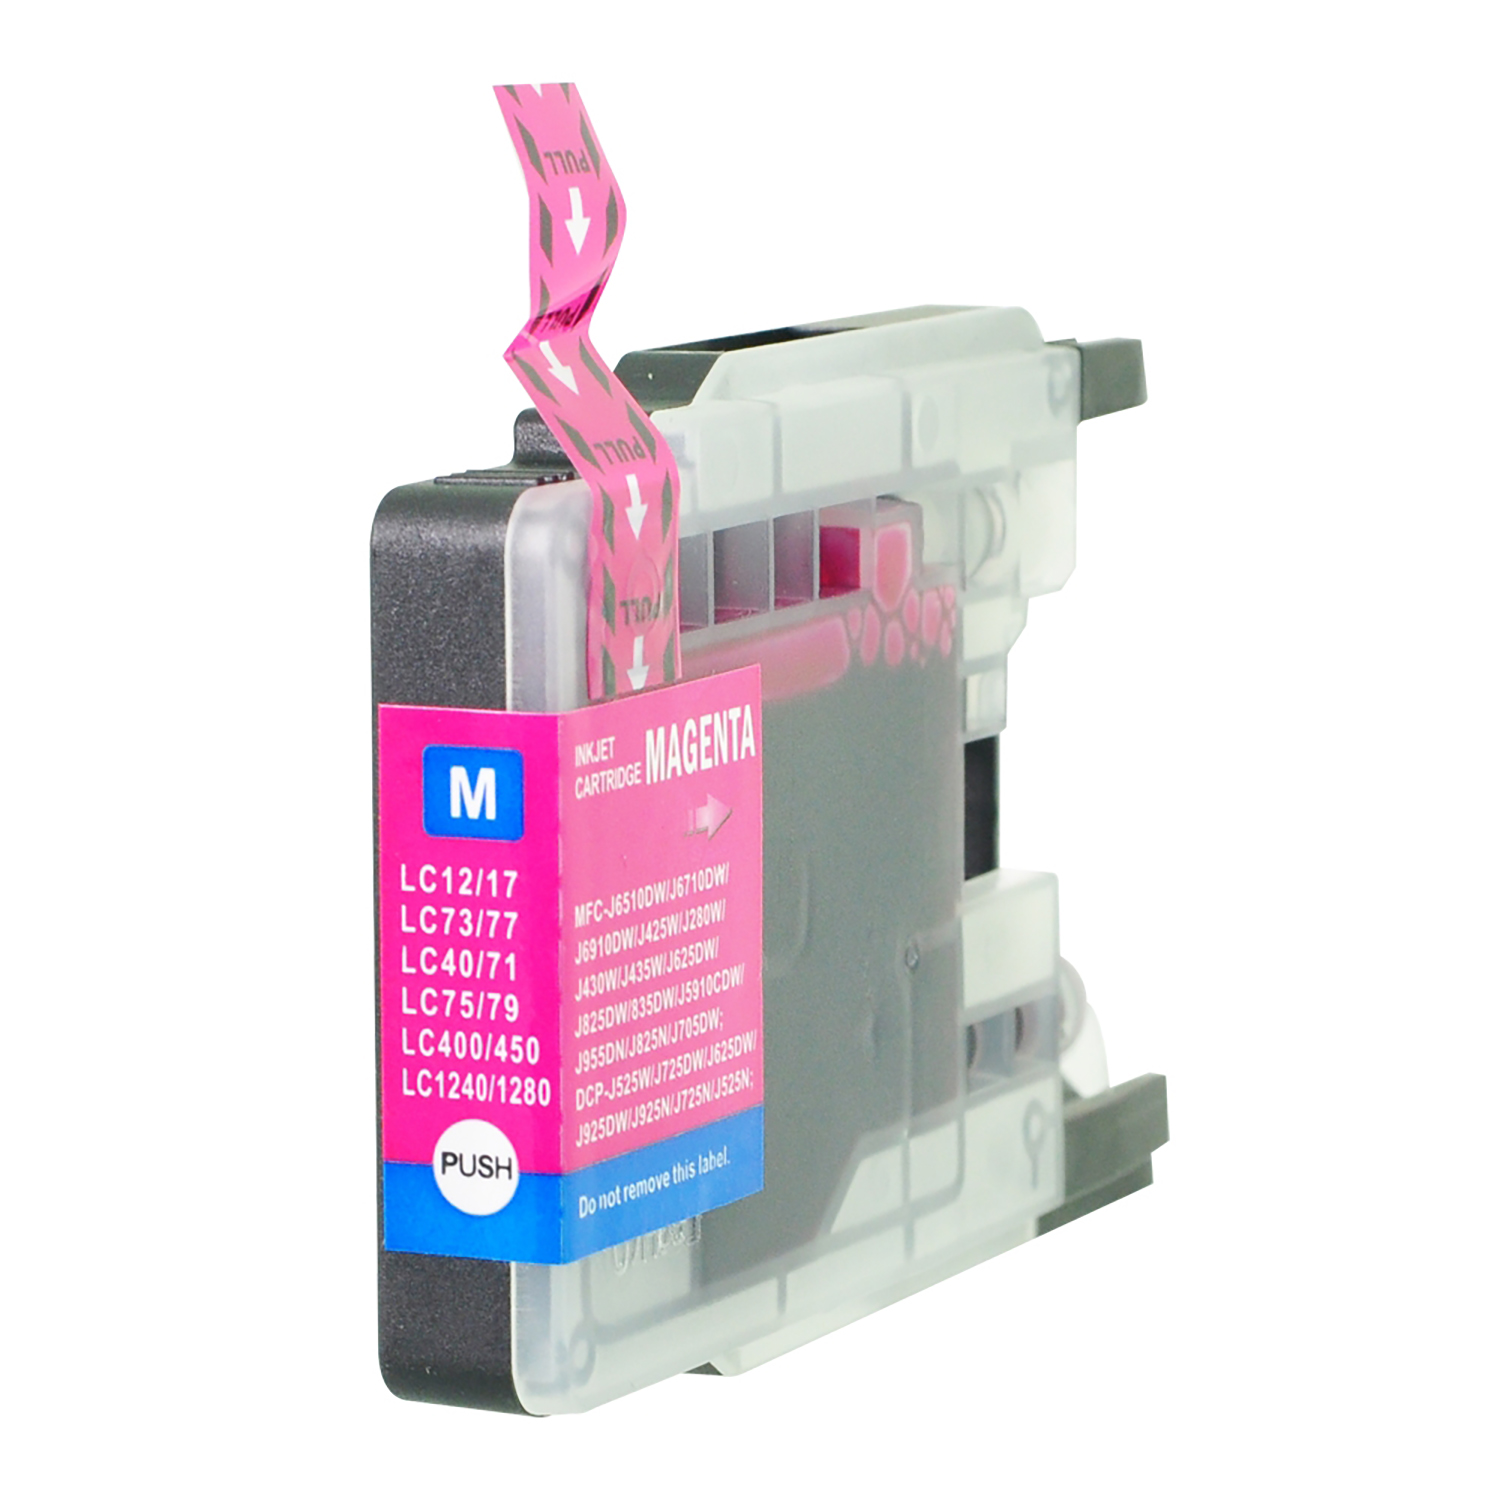 Ink cartridges 5 Star Value Remanufactured Inkjet Cartridge Page Life 1200pp HY Magenta Brother LC1280XLM Alternative